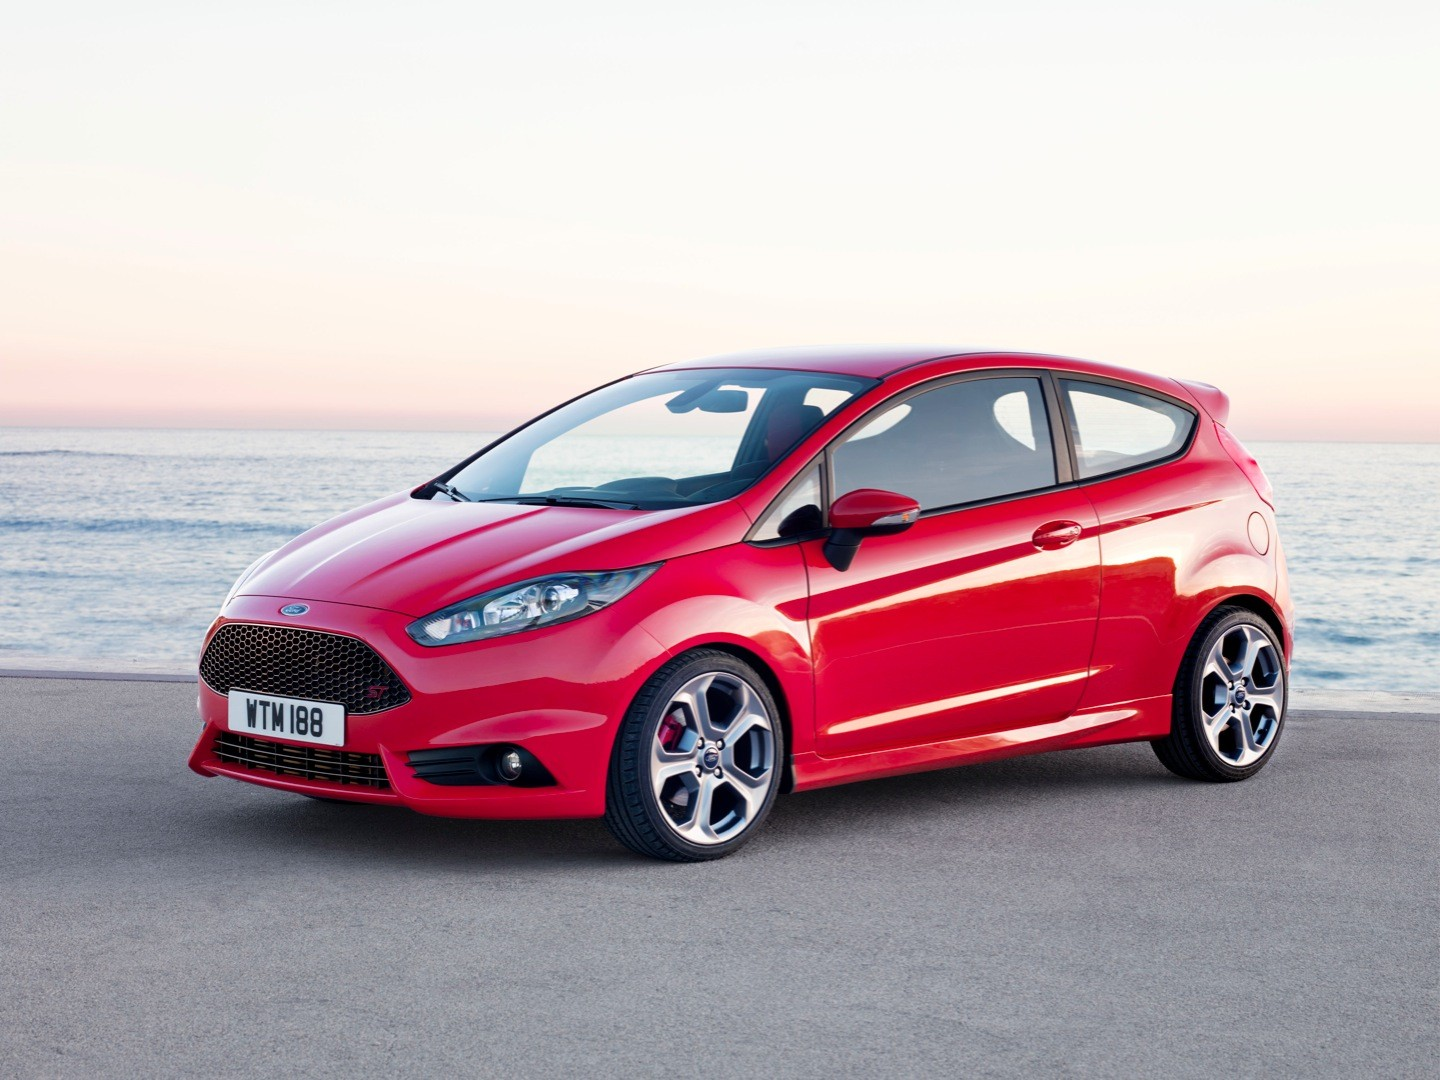 The 2018 Ford Fiesta St Compared To Its Predecessors